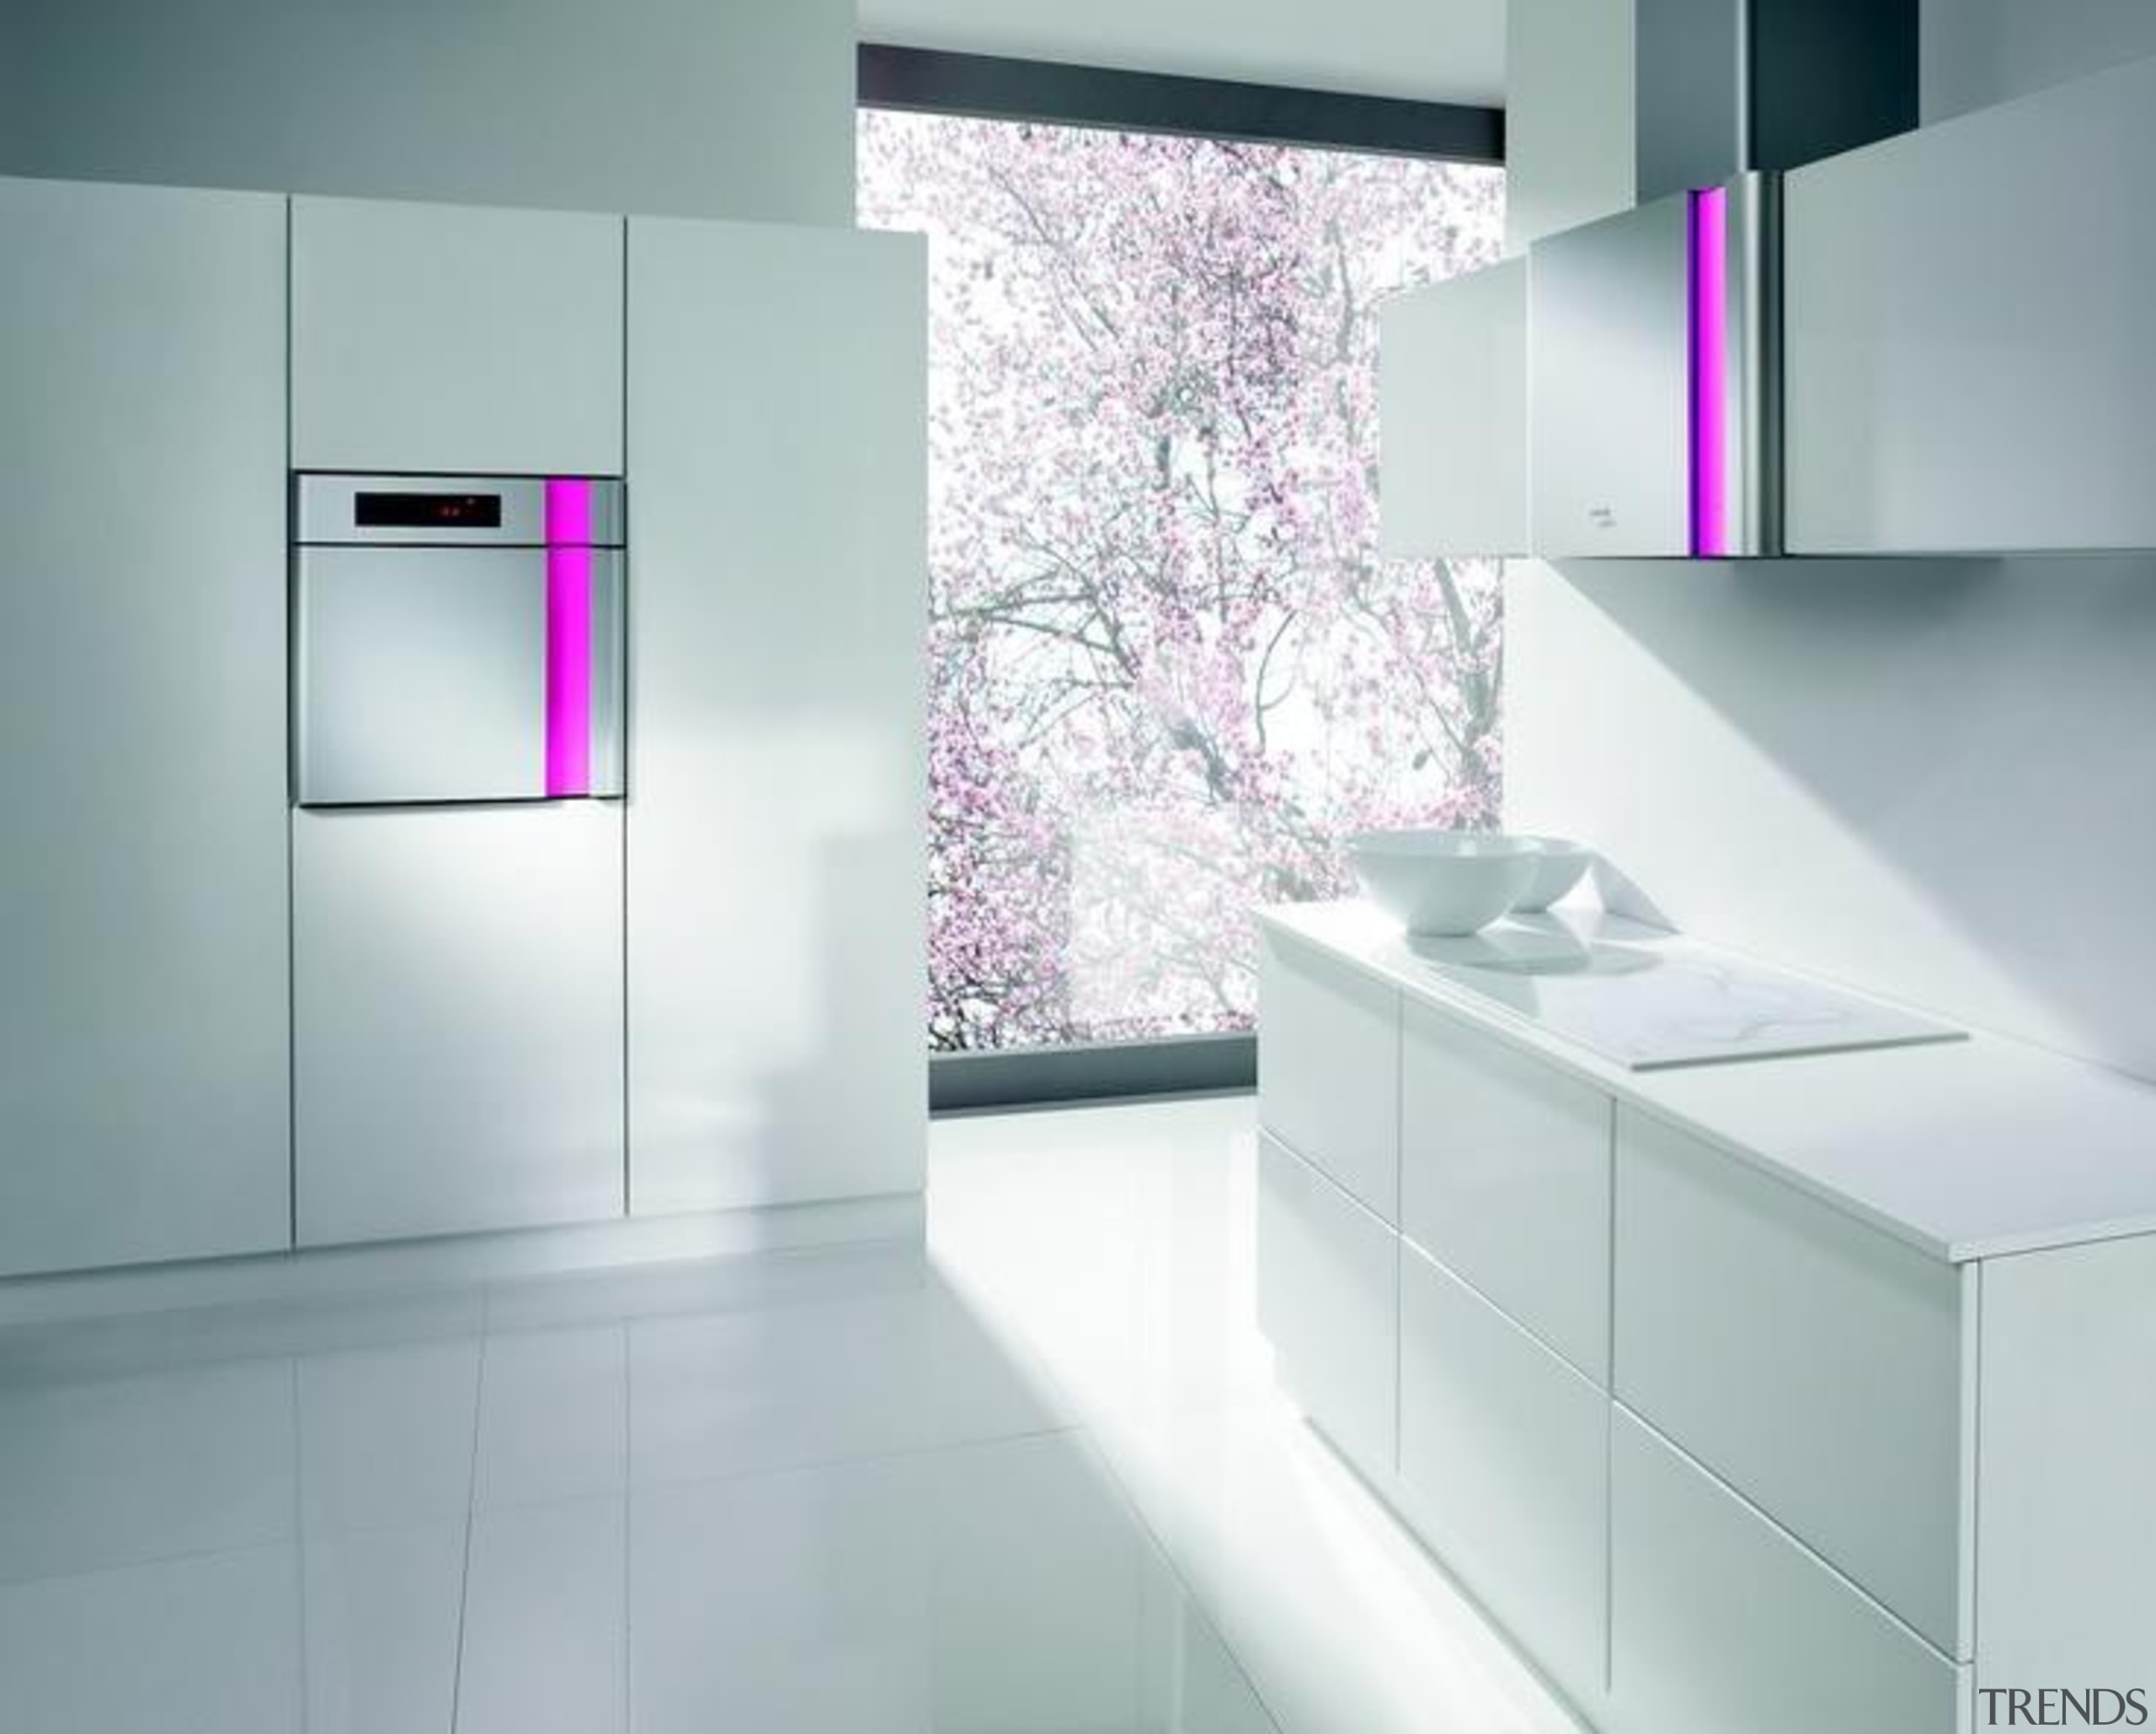 Kitchen design and appliances by  by Karim bathroom, bathroom accessory, bathroom cabinet, floor, furniture, glass, interior design, kitchen, product, product design, purple, sink, tap, gray